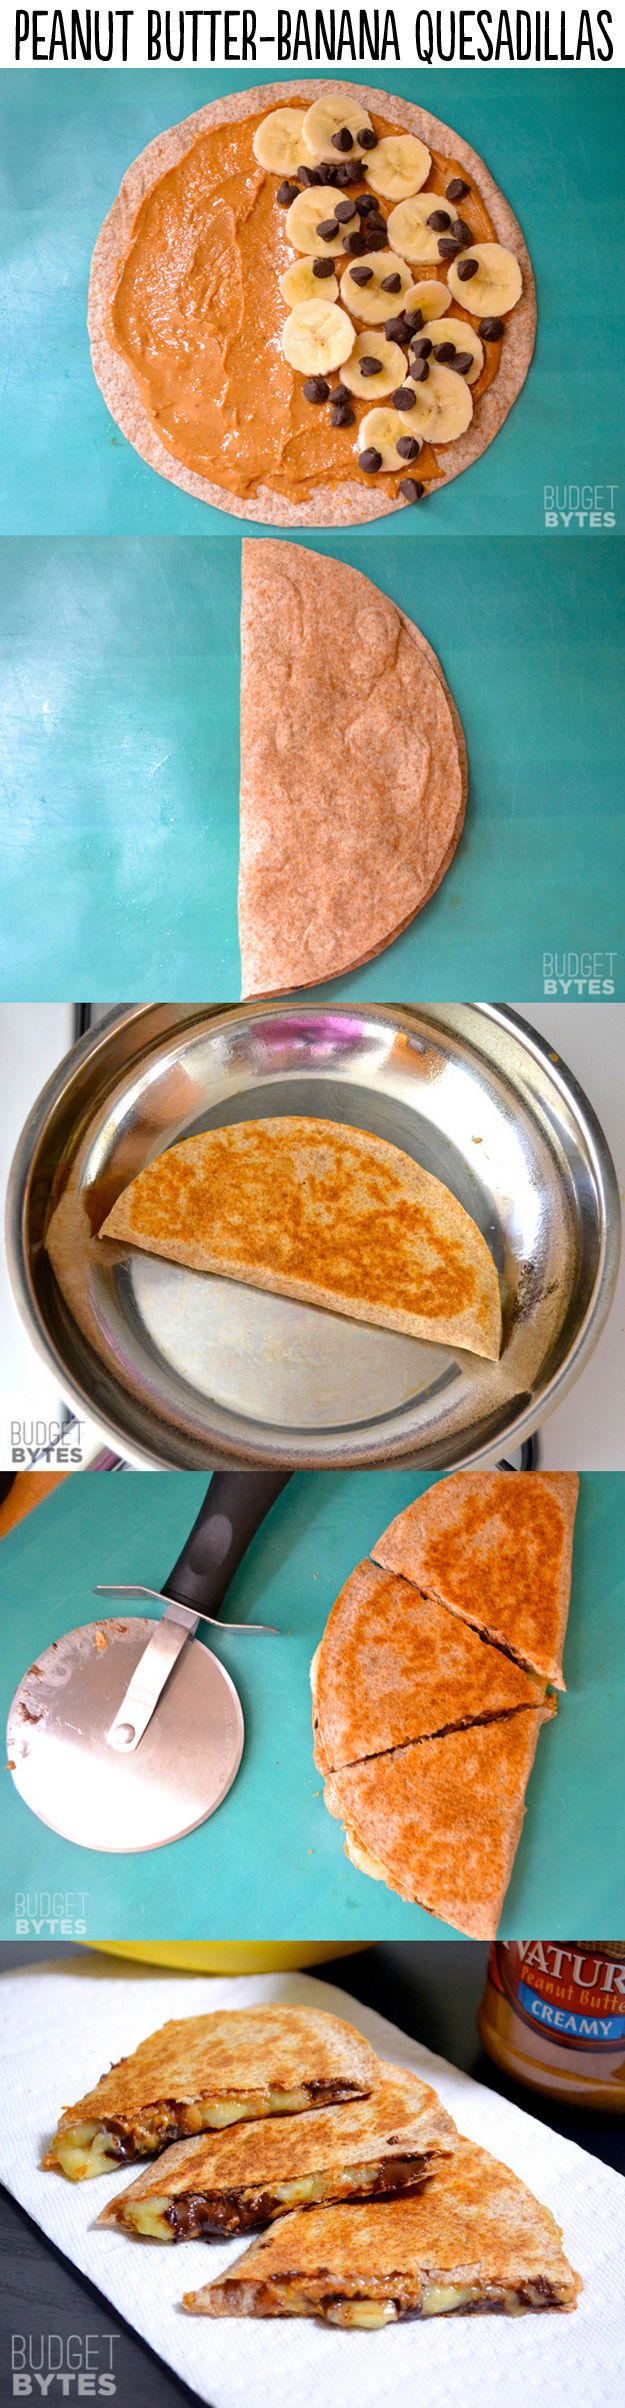 Peanut Butter Banana Quesadillas Pictures, Photos, and Images for ...